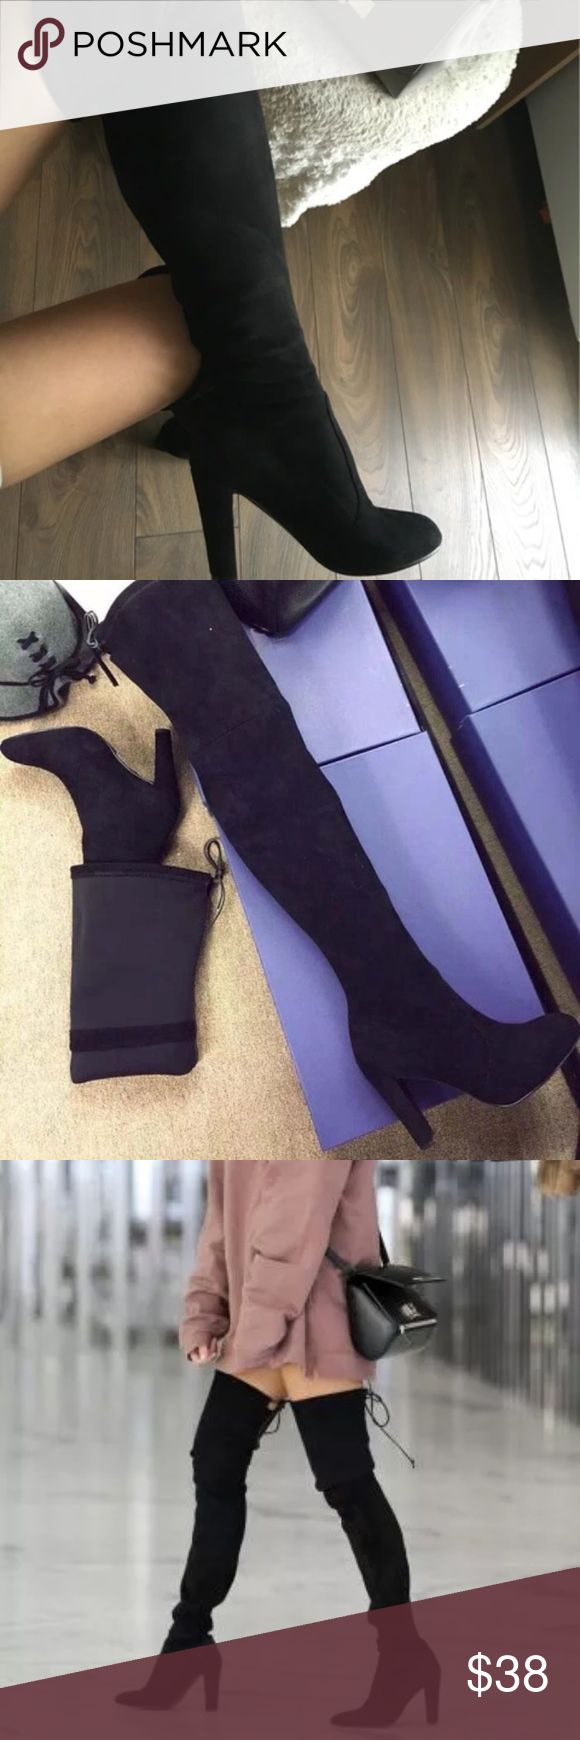 black thigh high boots Thigh highs are always in season  ✨ size: 8.5 | NEW | Offers welcome! Shoes Over the Knee Boots